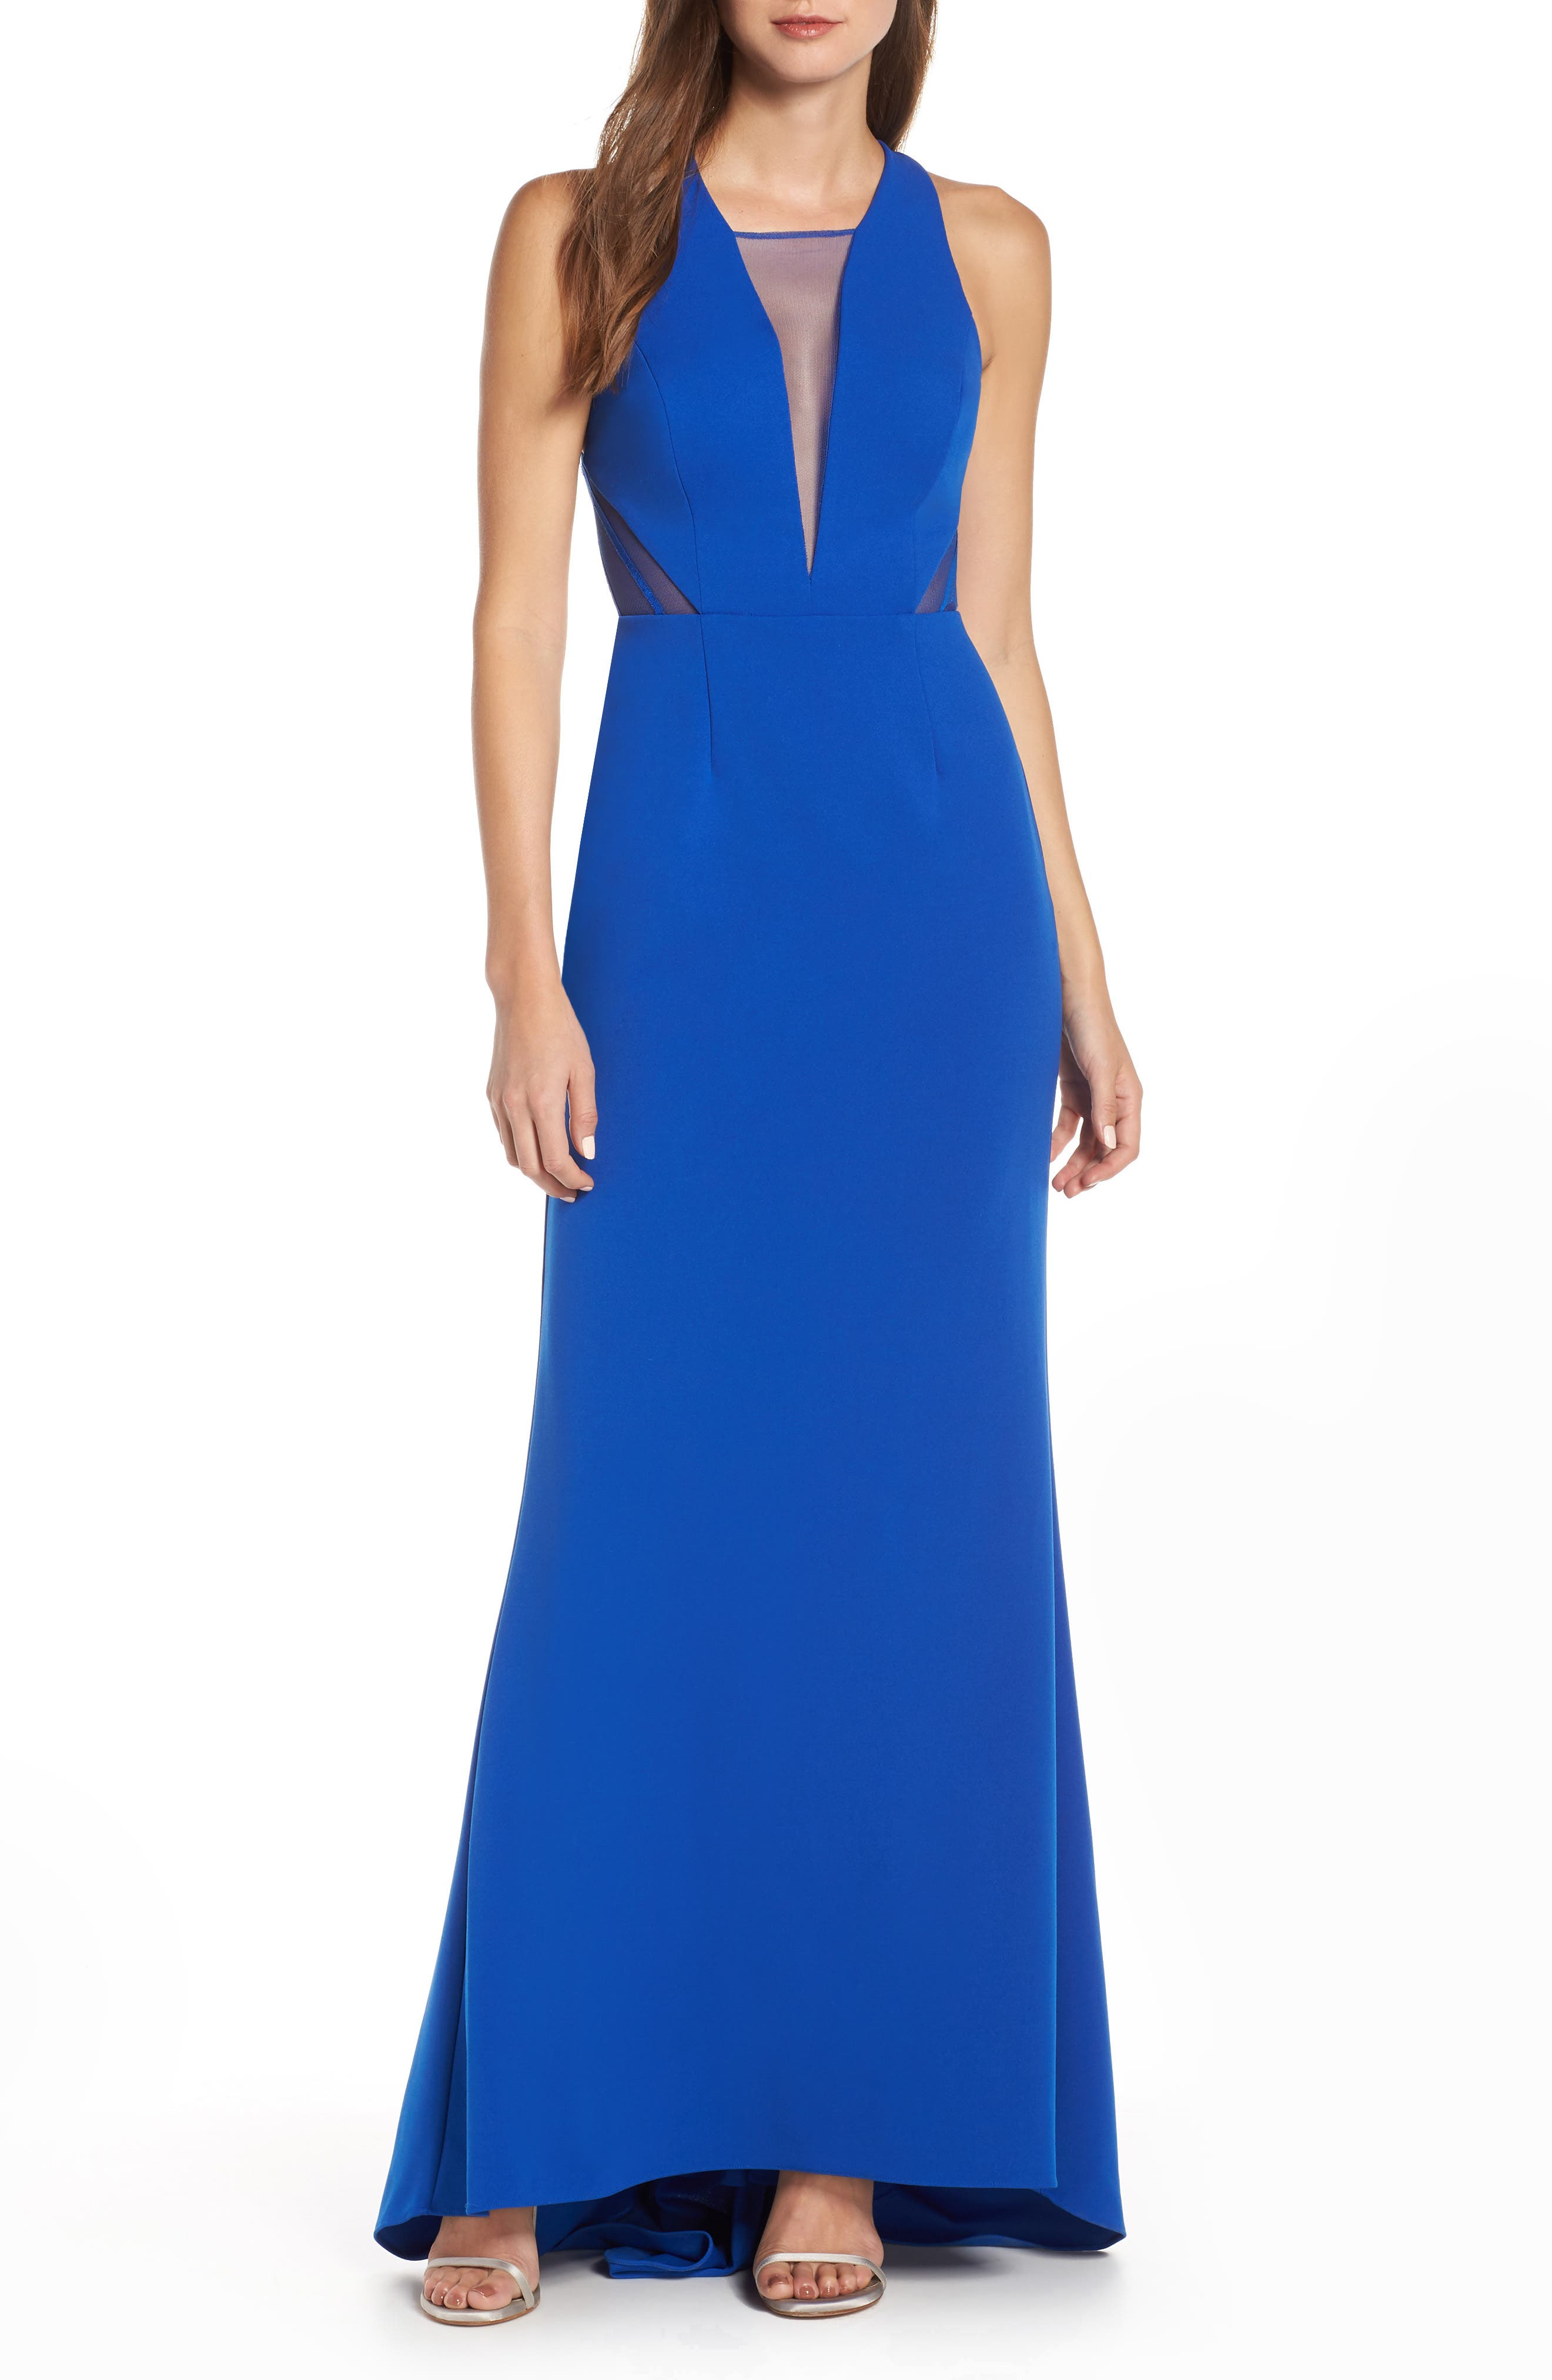 Adrianna Papell Lola Crossback Jersey Halter Gown, Blue